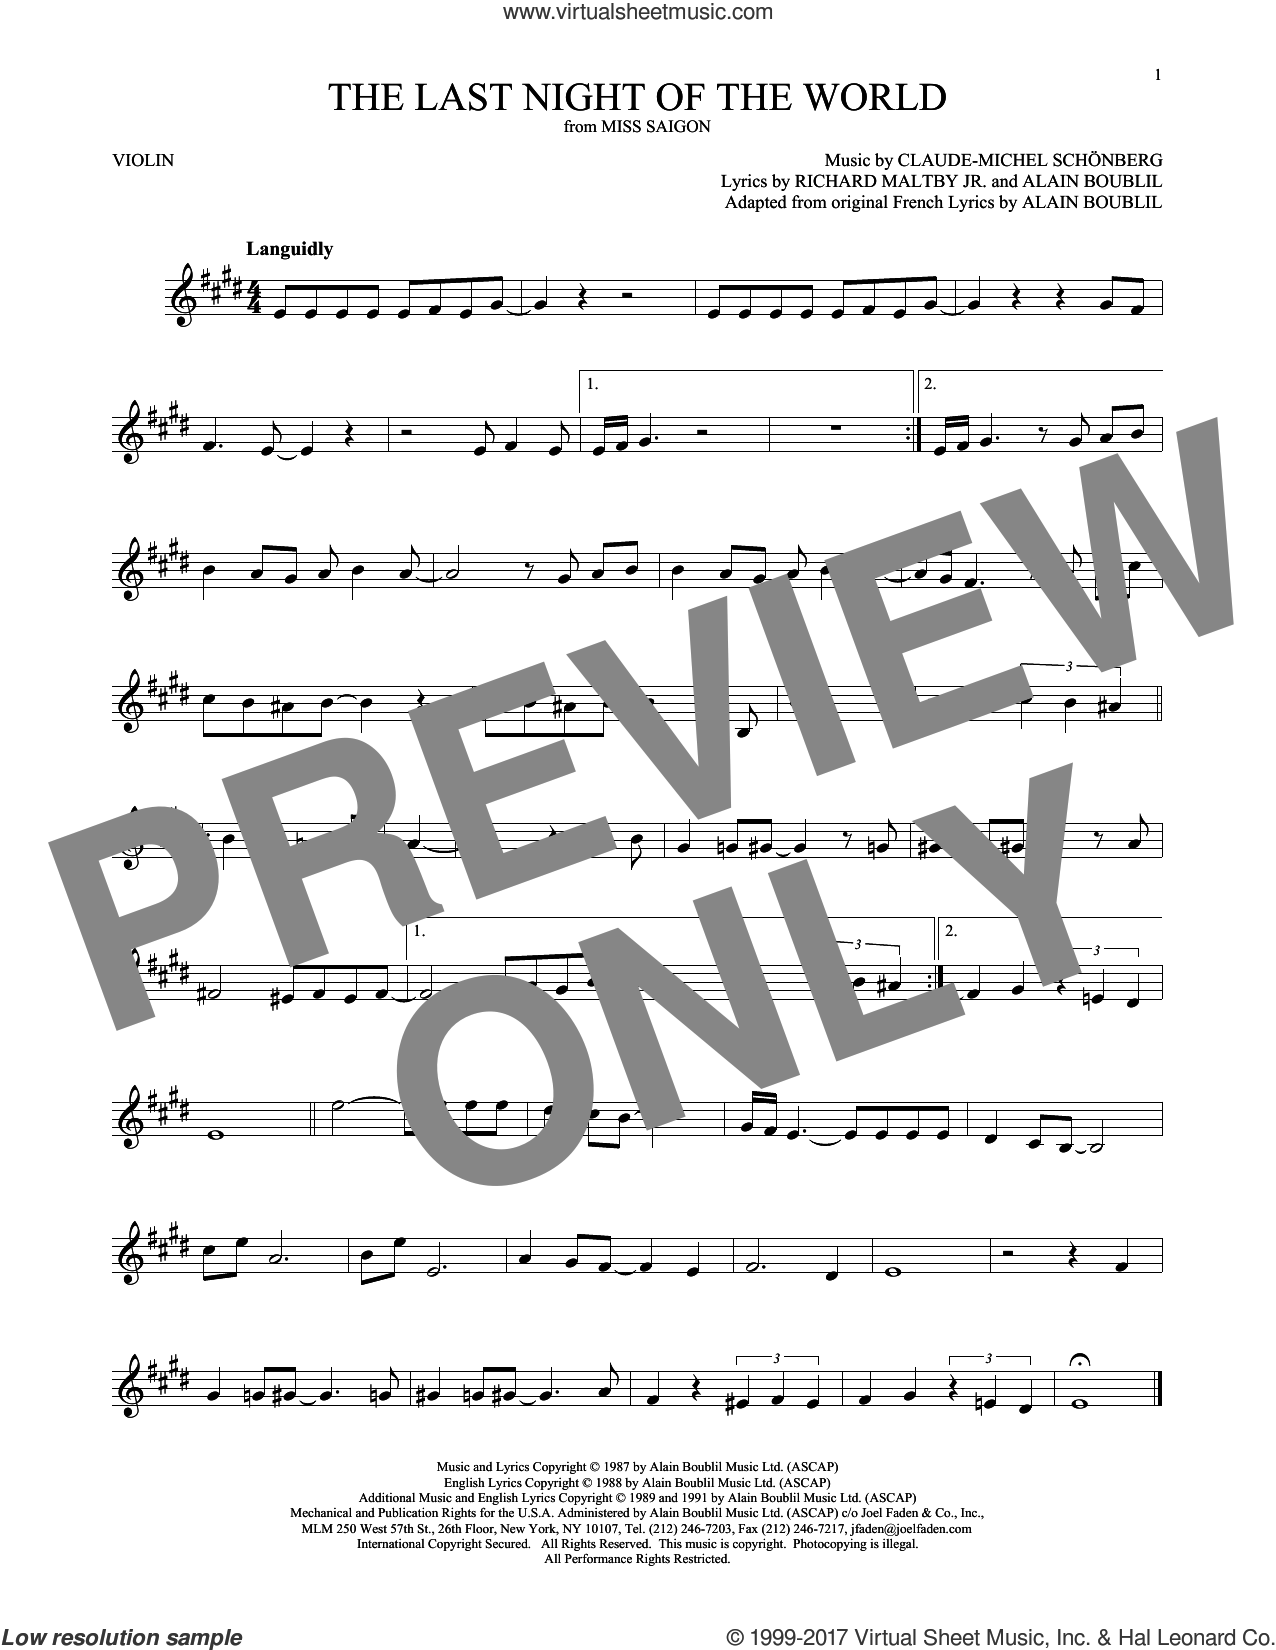 The Last Night Of The World sheet music for violin solo by Alain Boublil and Claude-Michel Schonberg, intermediate skill level